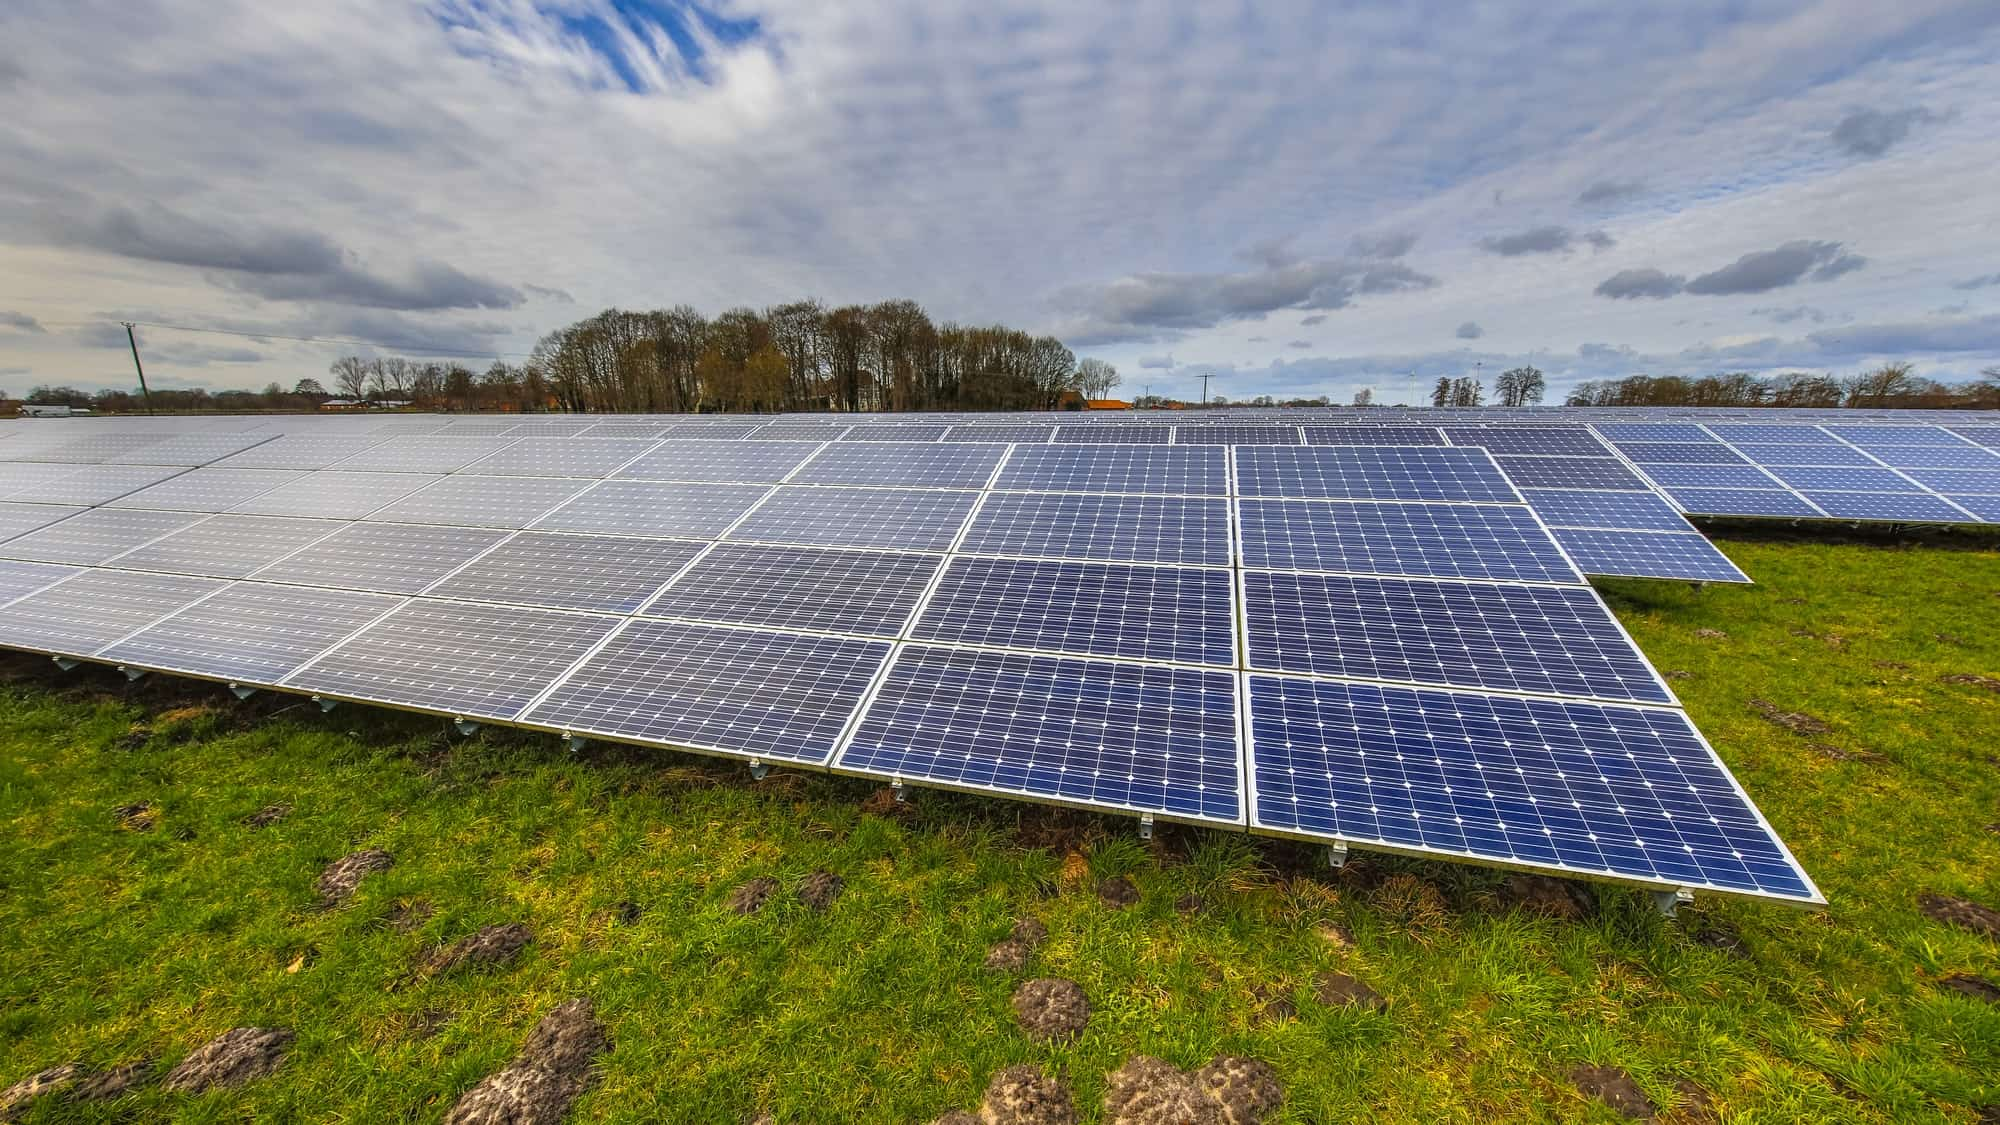 solar panels of a photovoltaic system